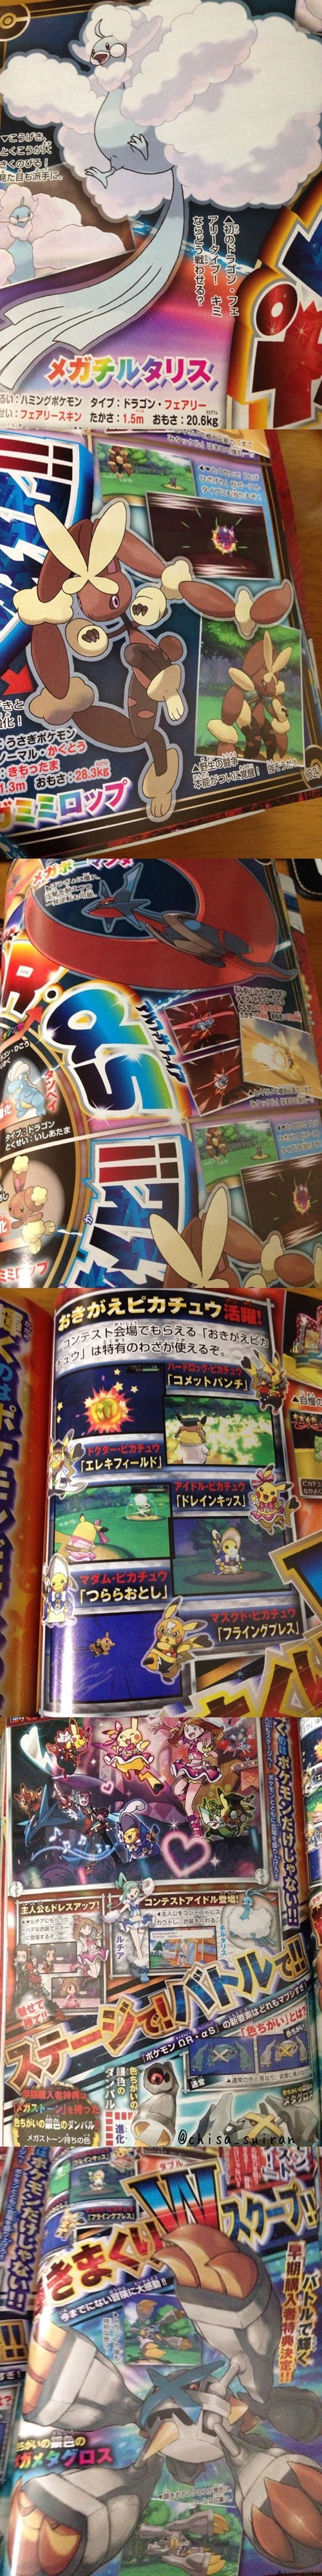 Pokémon,scans,news,mega evolutions,corocoro,Video Game Coverage